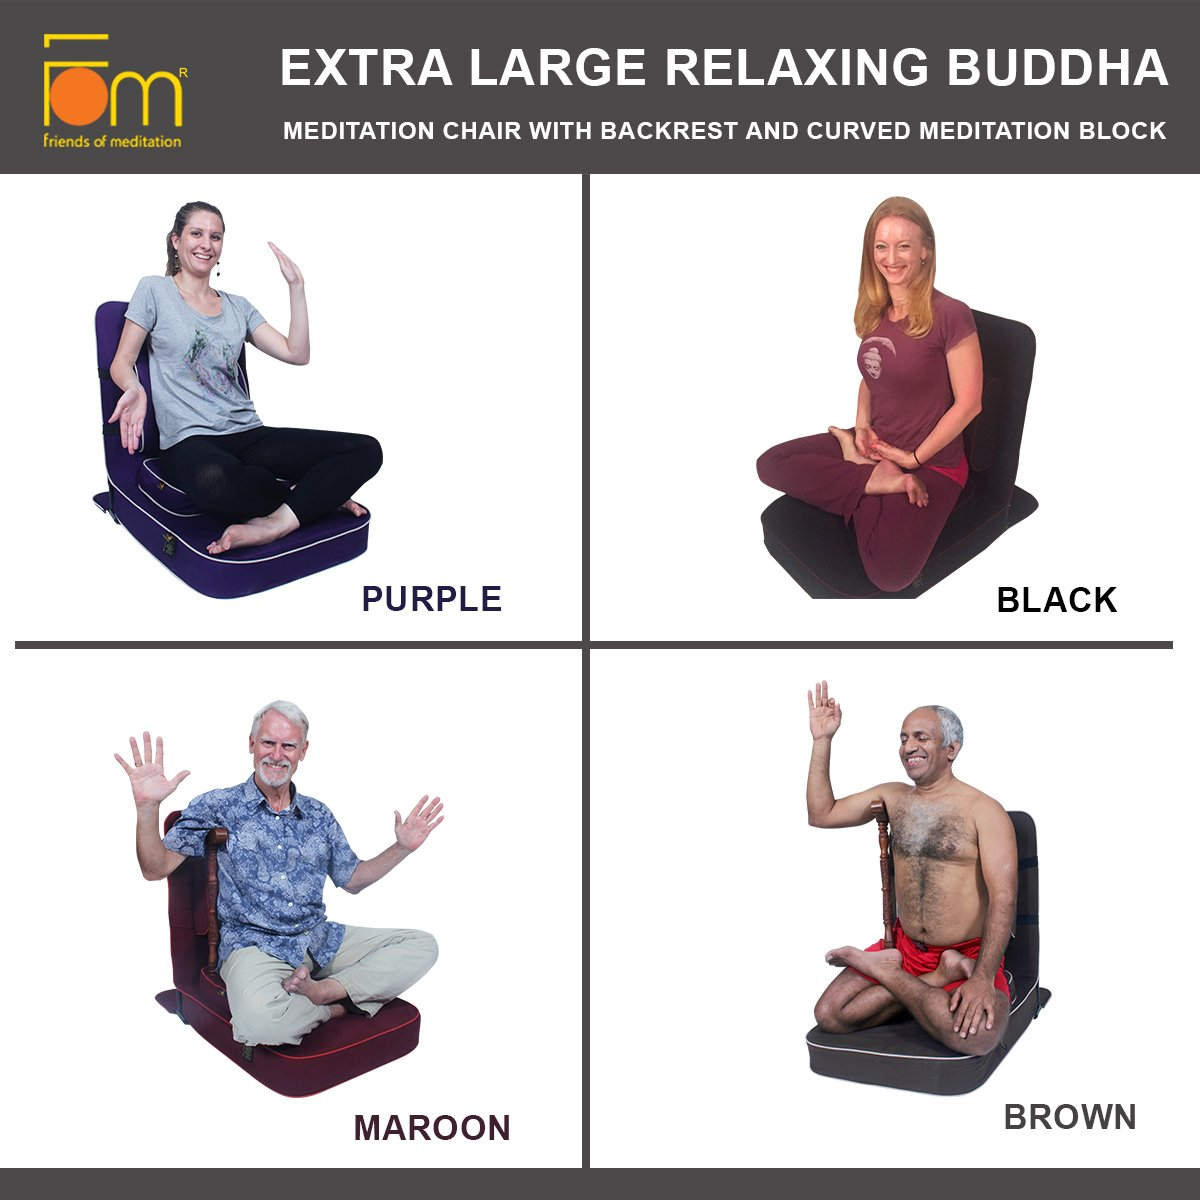 Amazon.com : Friends of Meditation Extra Large Relaxing Buddha Meditation and Yoga Chair with backsupport and Meditation Block (Pack of 8 Maroon) : Sports & ...